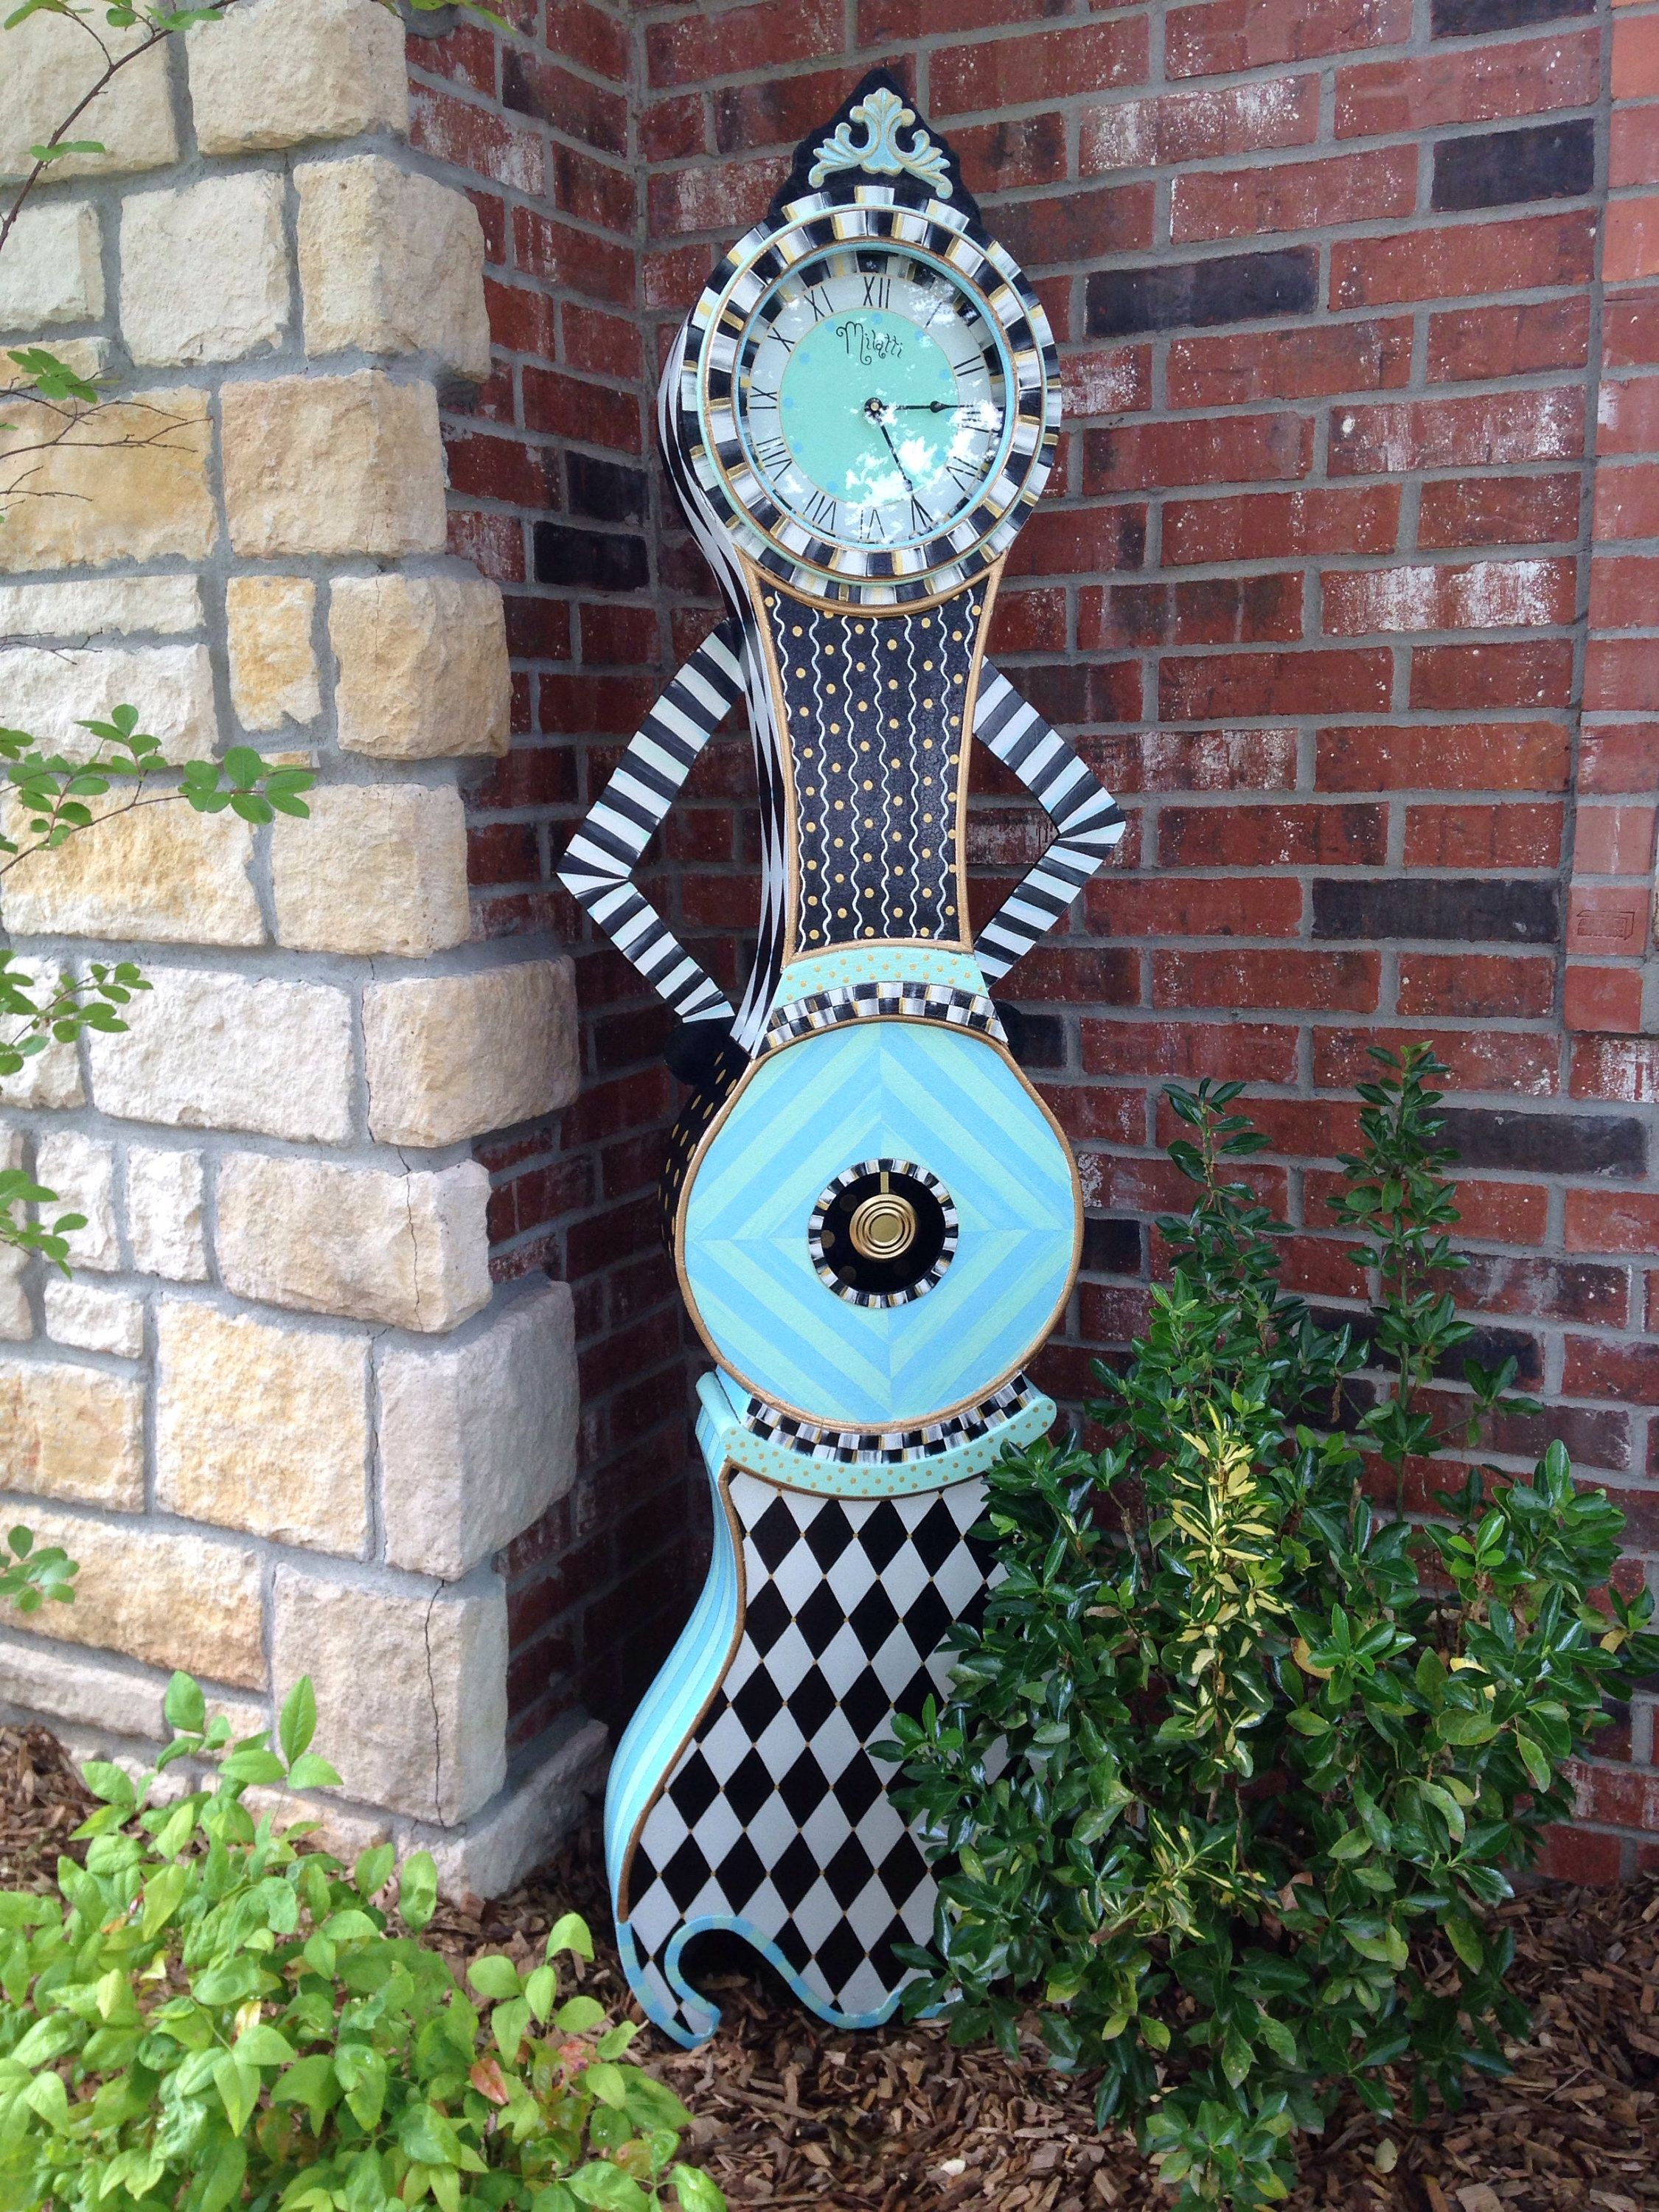 Whimsical Hand Painted Alice In Wonderland Grandfather Clocks